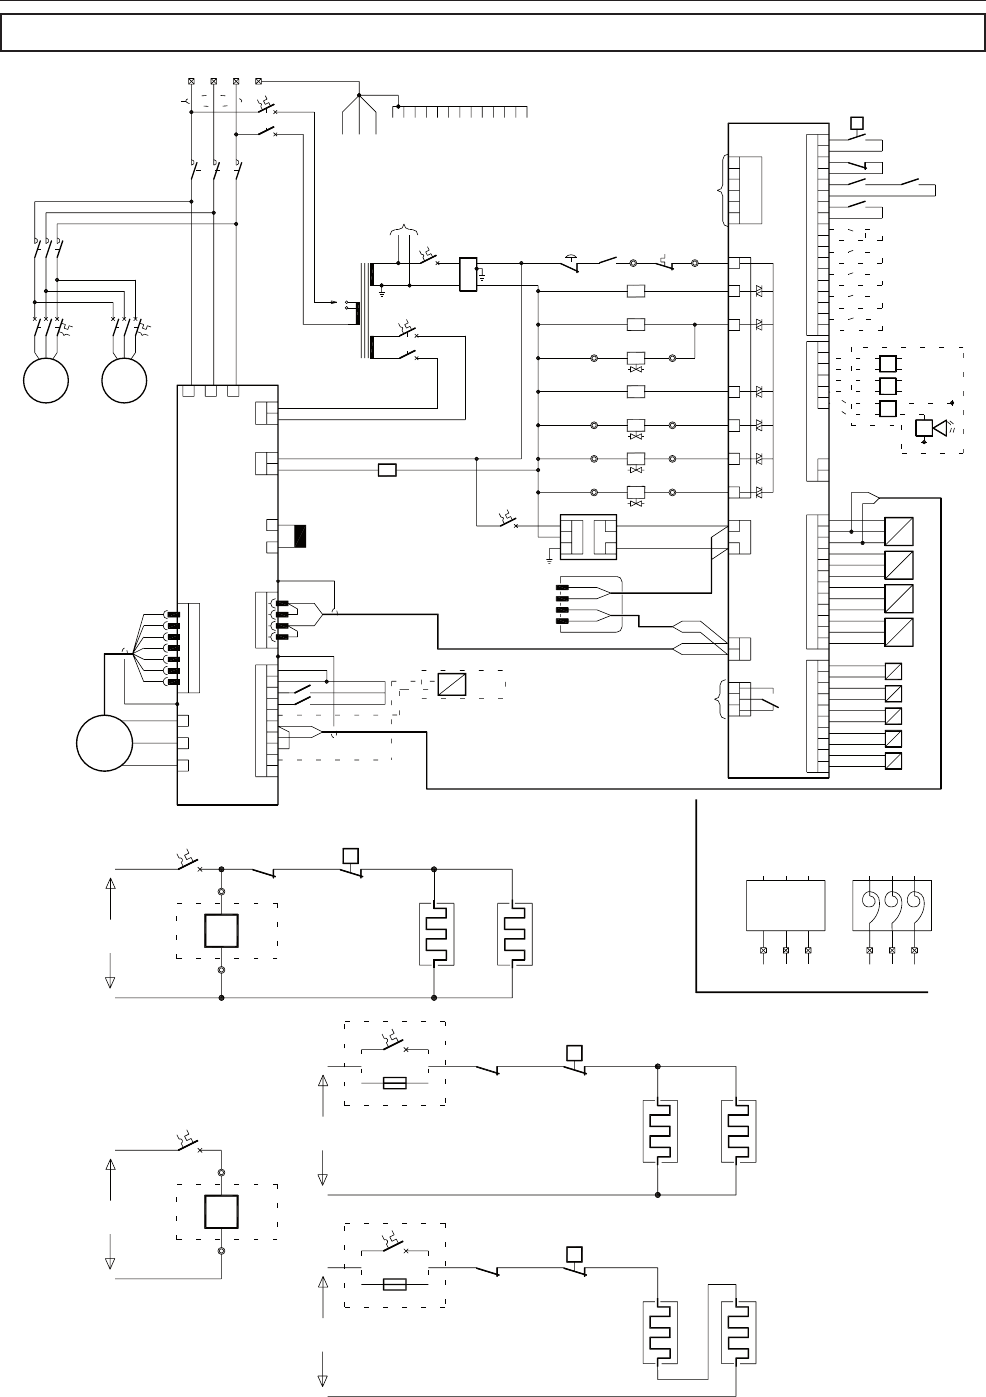 ingersoll rand air compressor wiring diagram   44 wiring